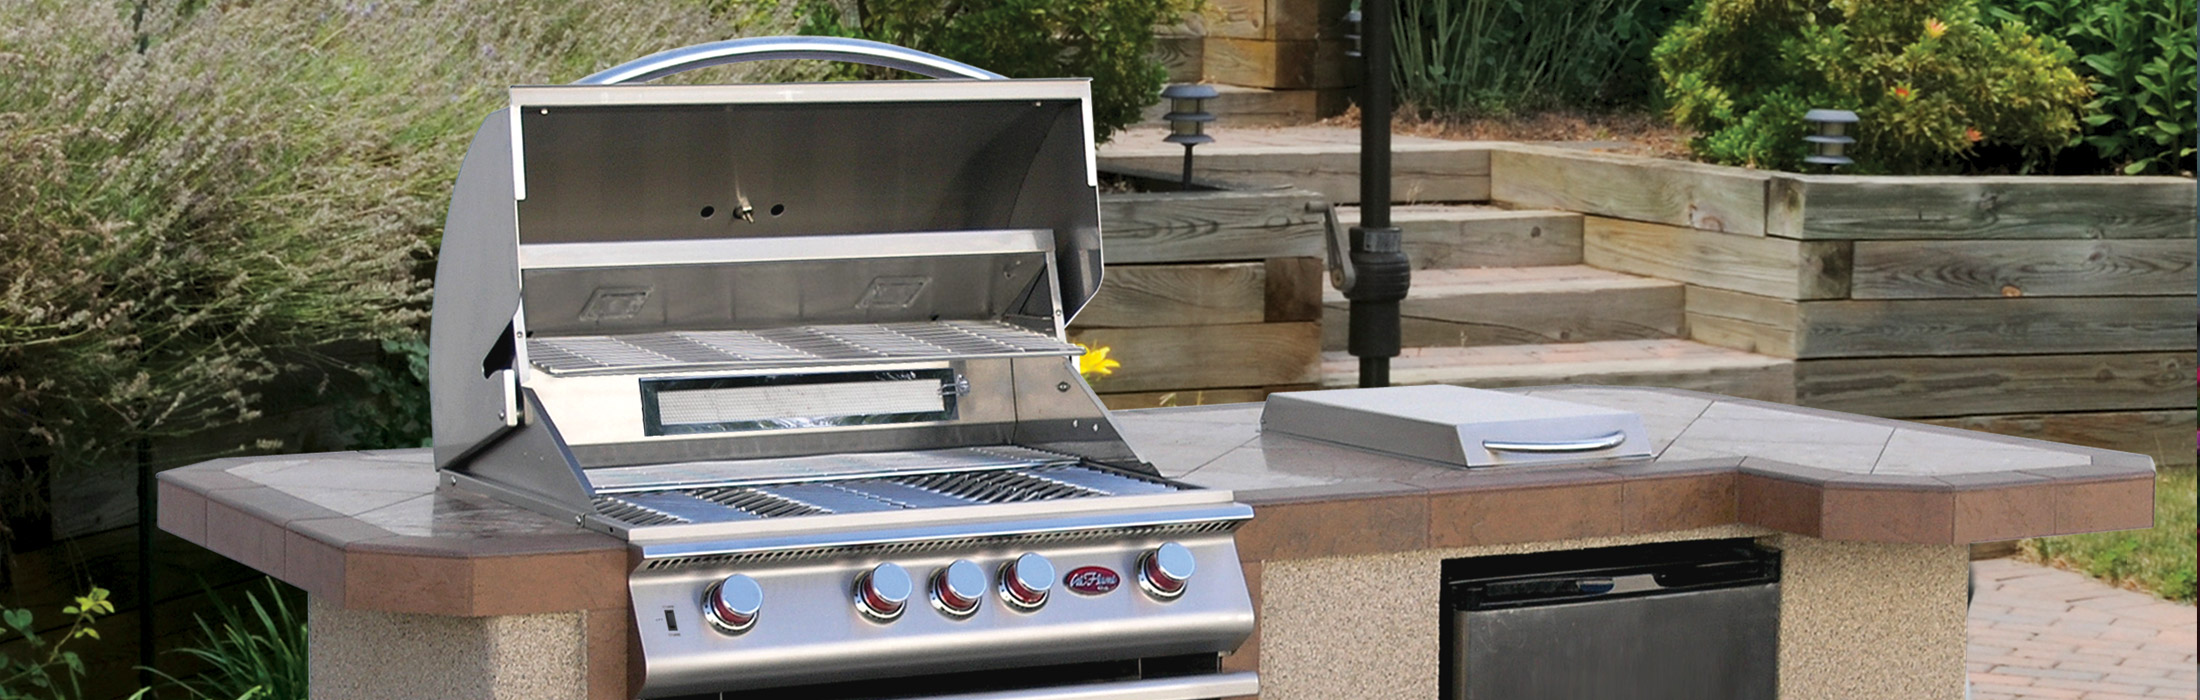 outdoor bbq g series p series and convection grills at